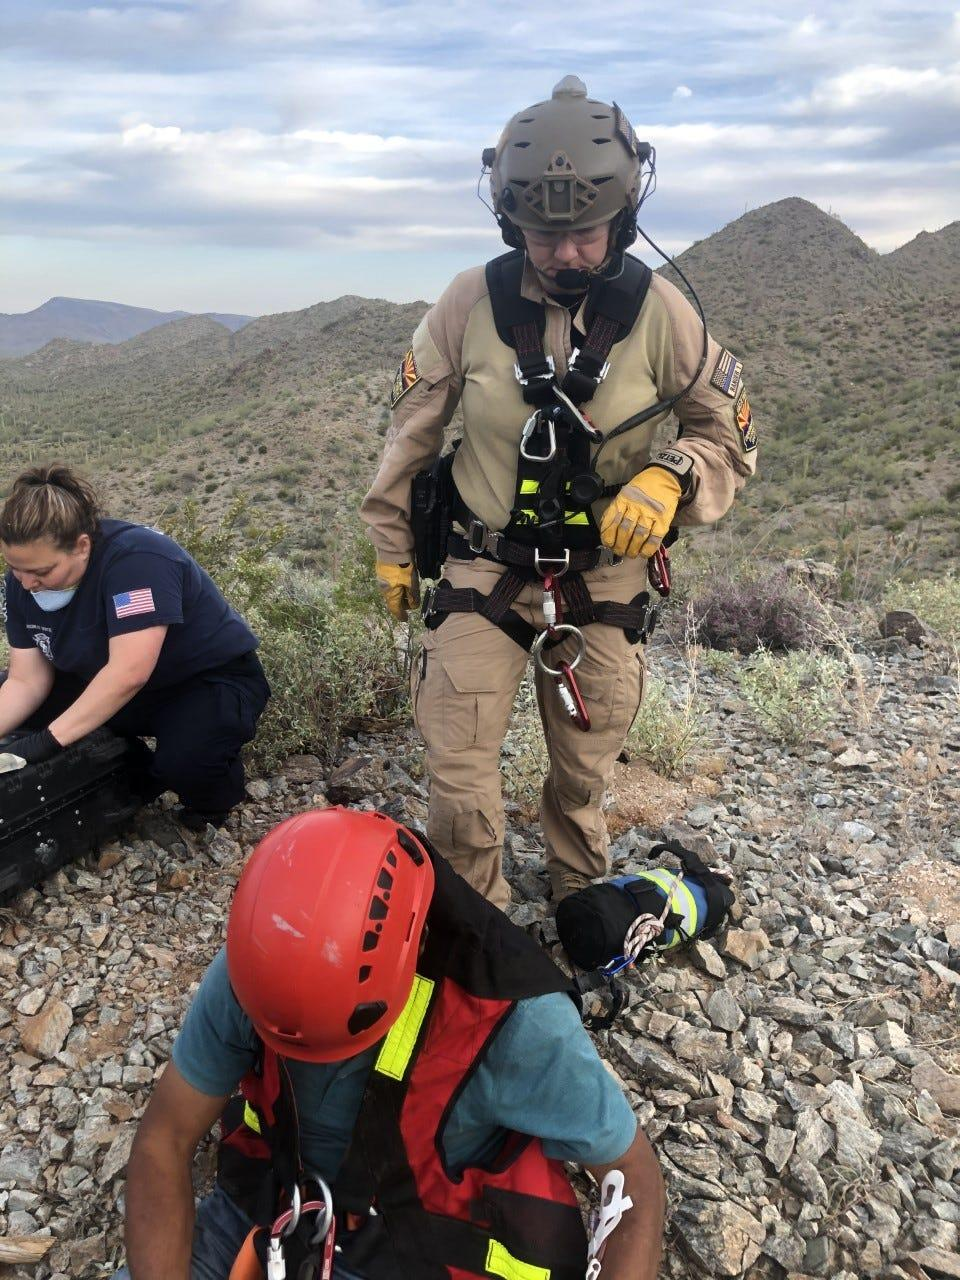 Migrant rescues in Arizona desert exceed 2019 complete regardless of COVID-19 pandemic